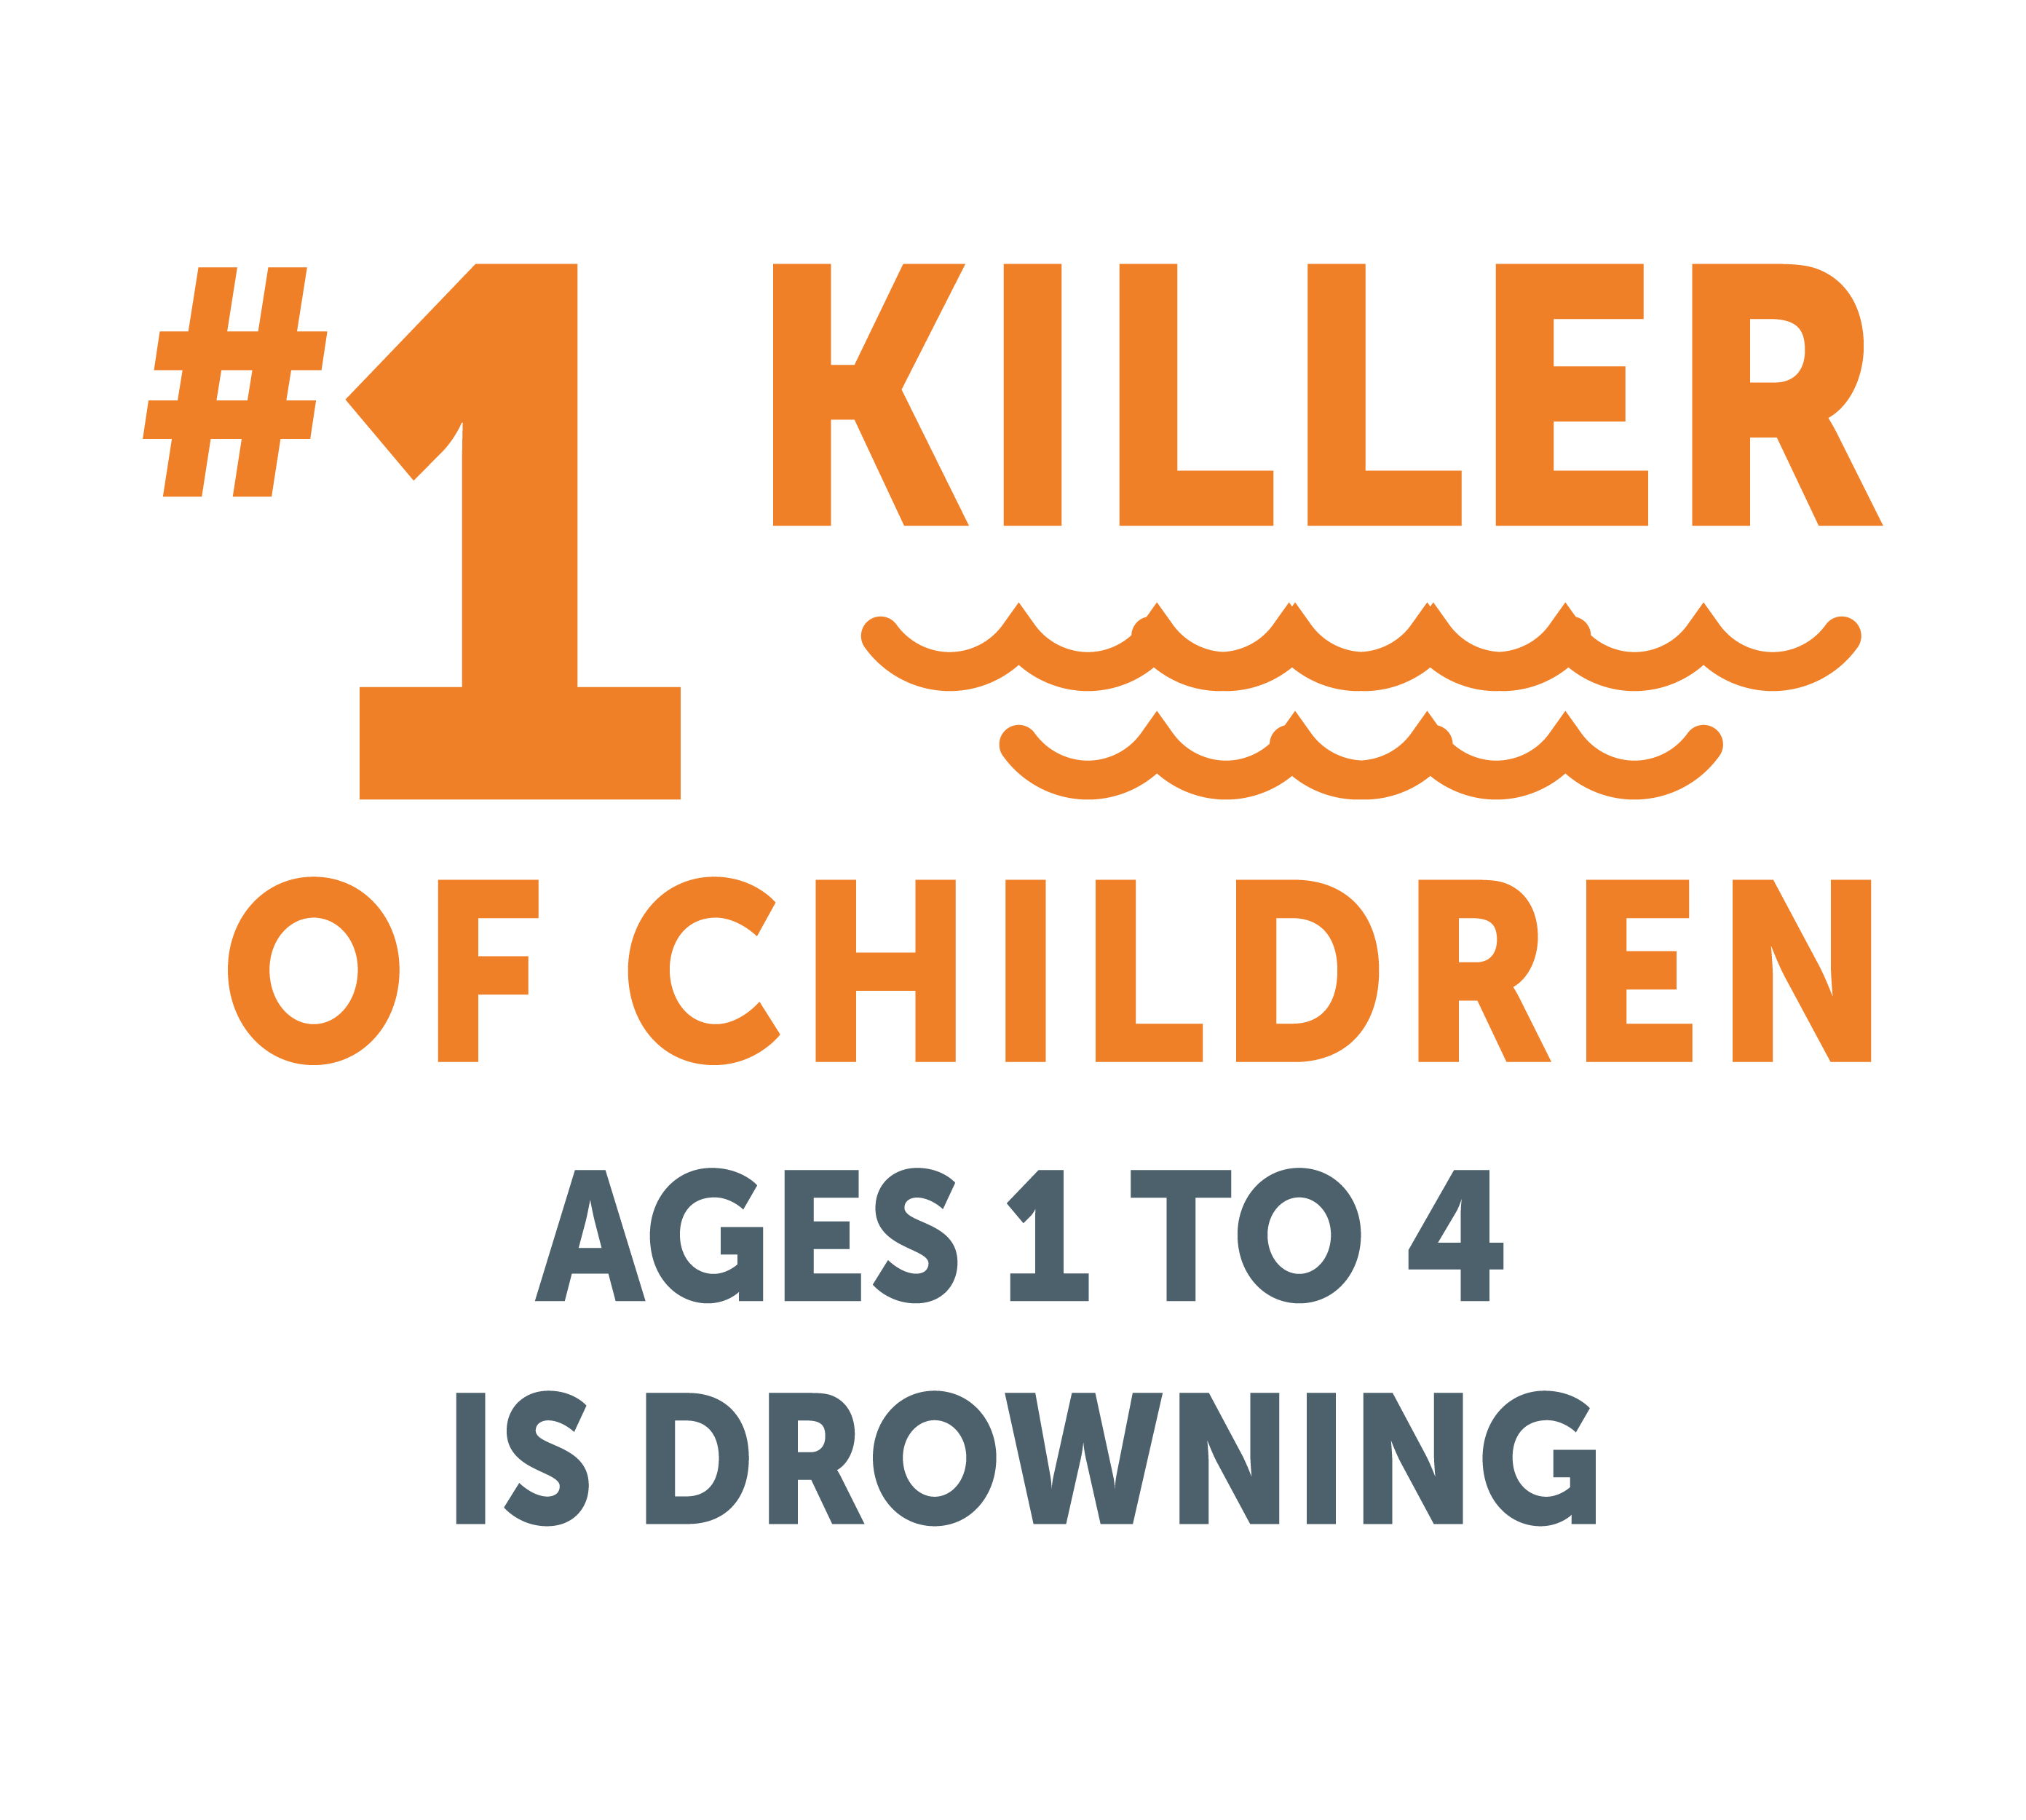 Safety Corner: Drowning prevention starts at home